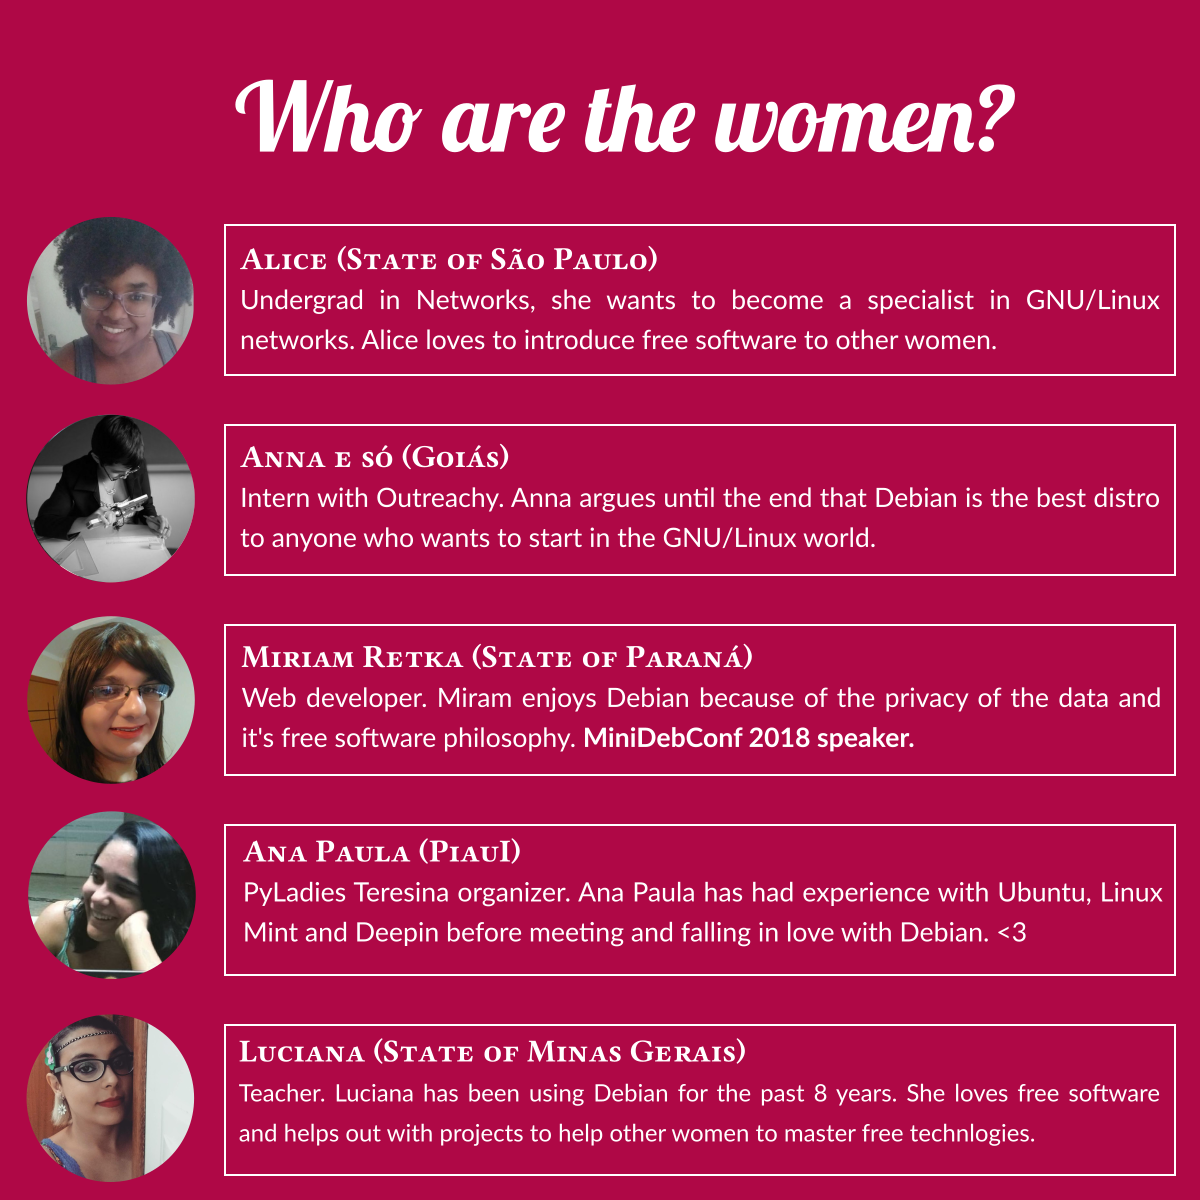 Women in MiniDebConf. Let's show that, yes, there are many women with potential that are interested in the world of free technologies and who use Debian! Help with the campaign for diversity at MiniDebConf: https://catarse.me/mulheres_na_minidebconf